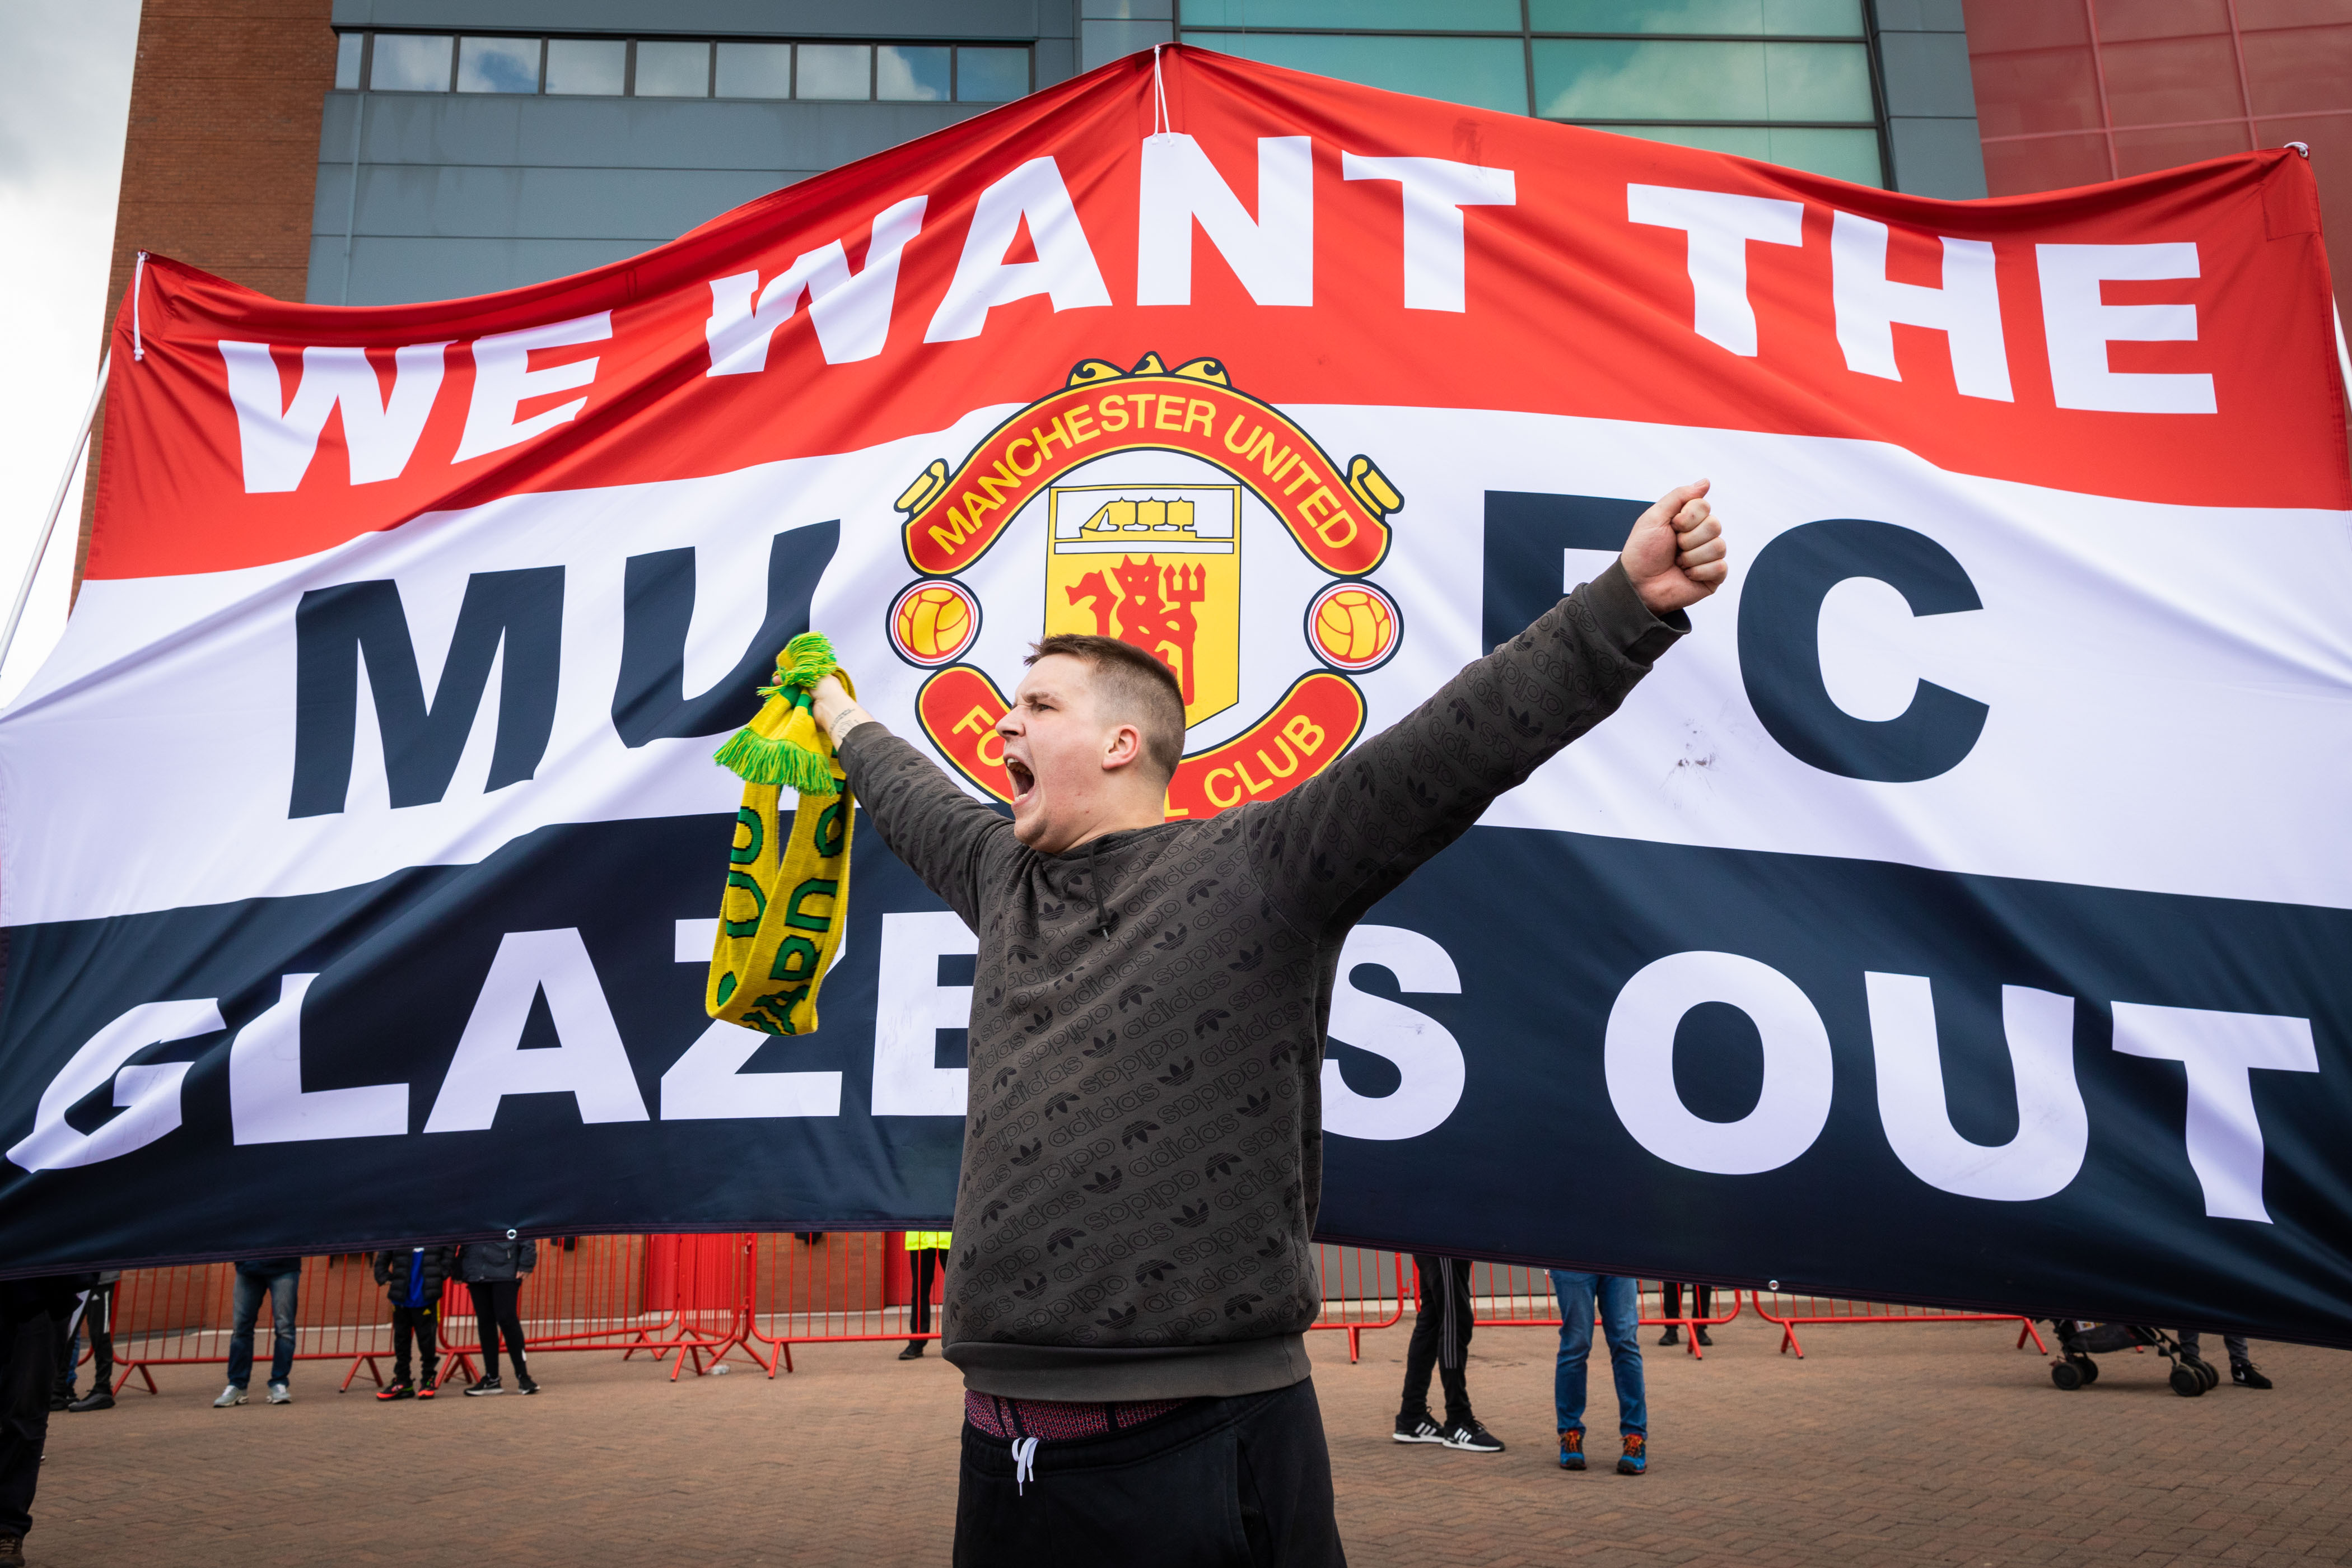 <p>A football fan chants slogans in front of a banner before a protest against the Glazer's ownership of Manchester United. (Photo by Andy Barton / SOPA Images/Sipa USA)</p>